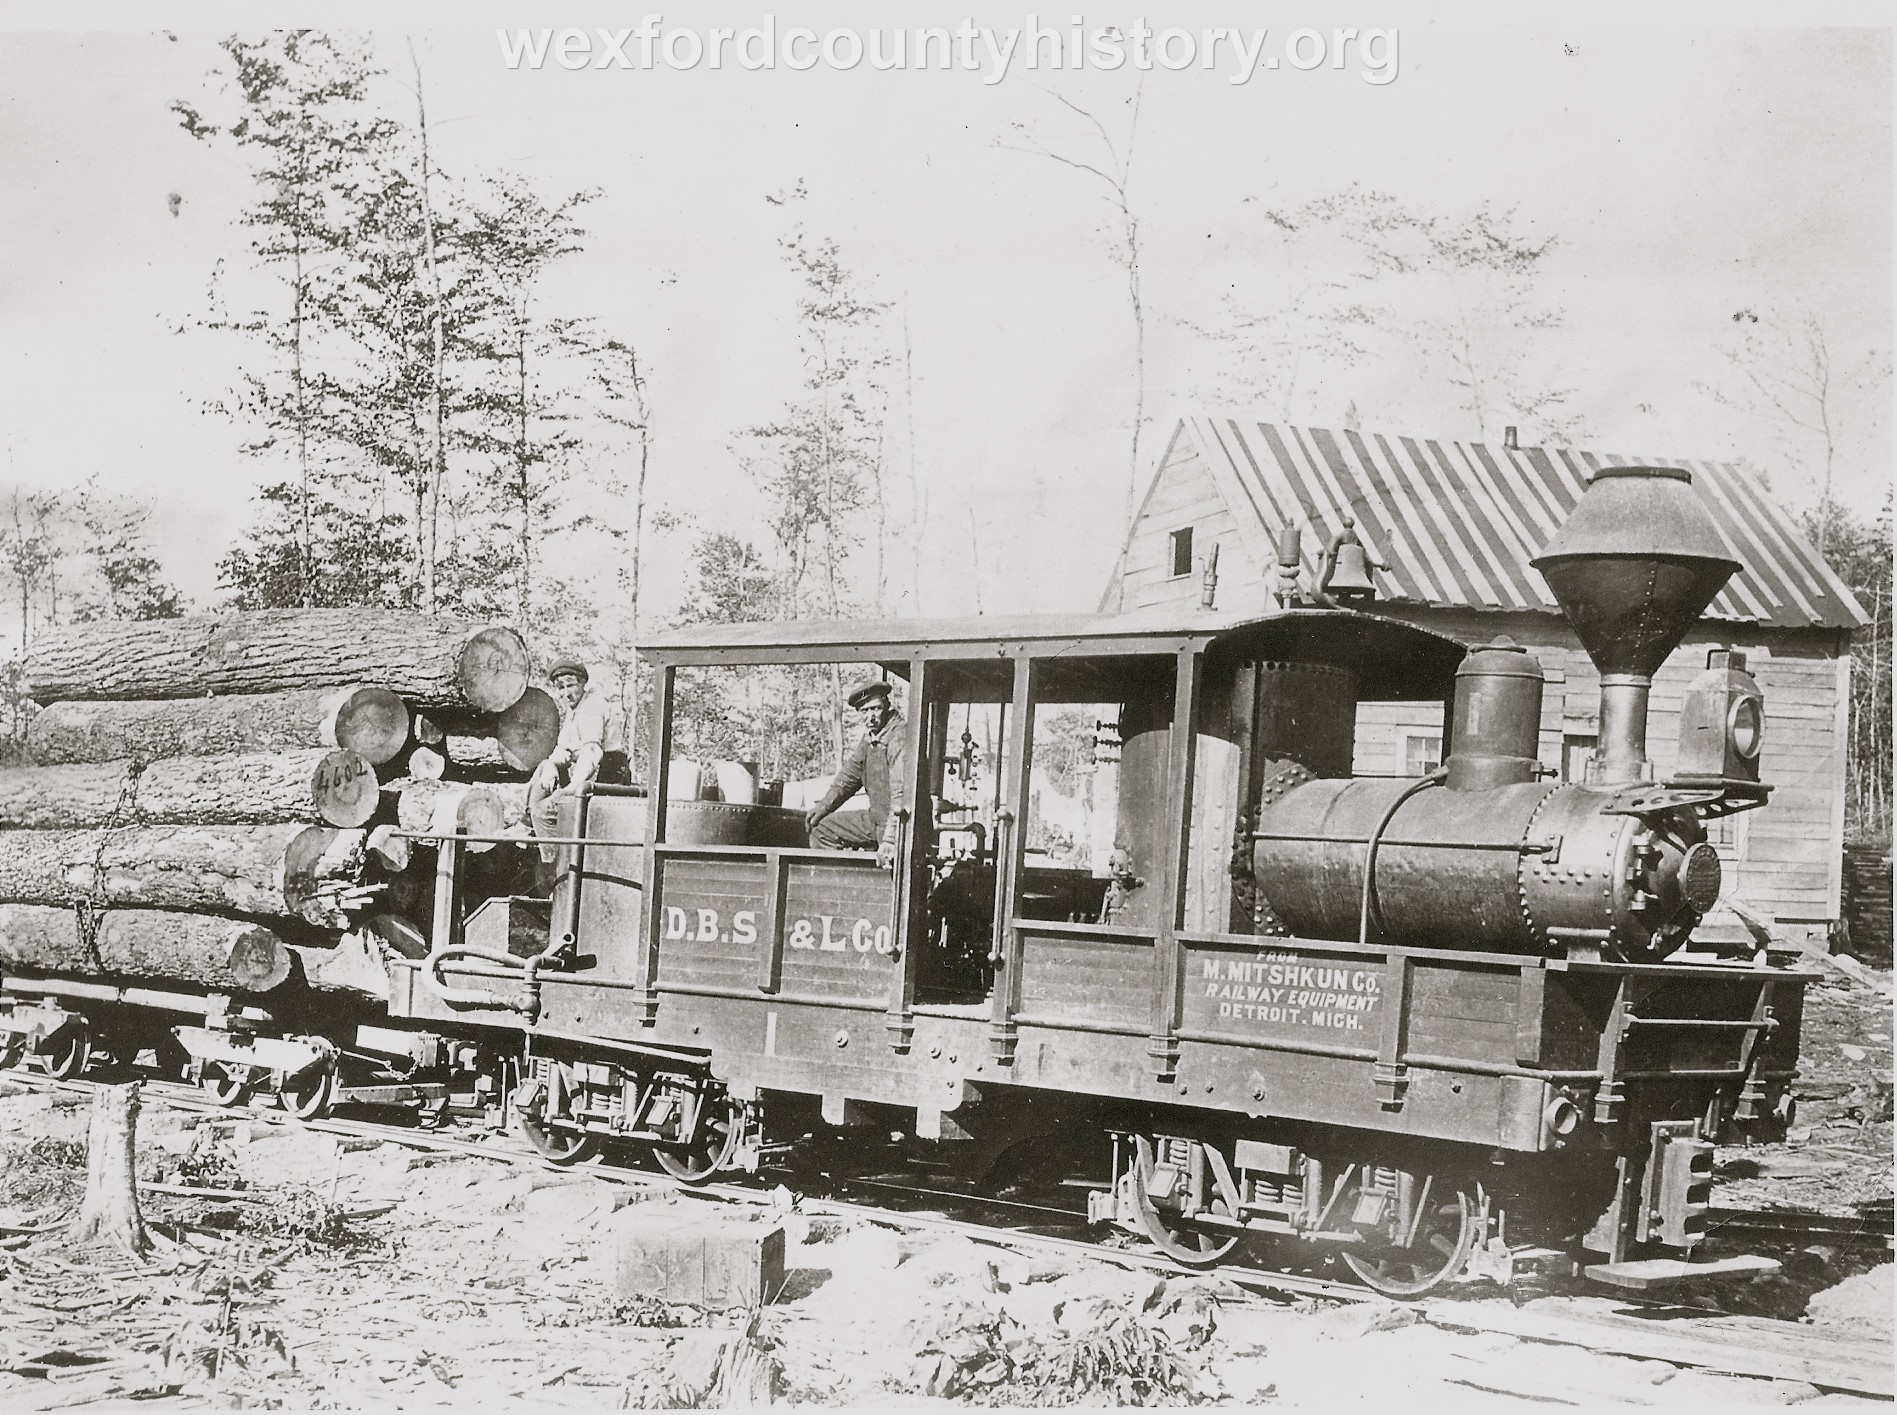 Climax Locomotive in Missaukee County